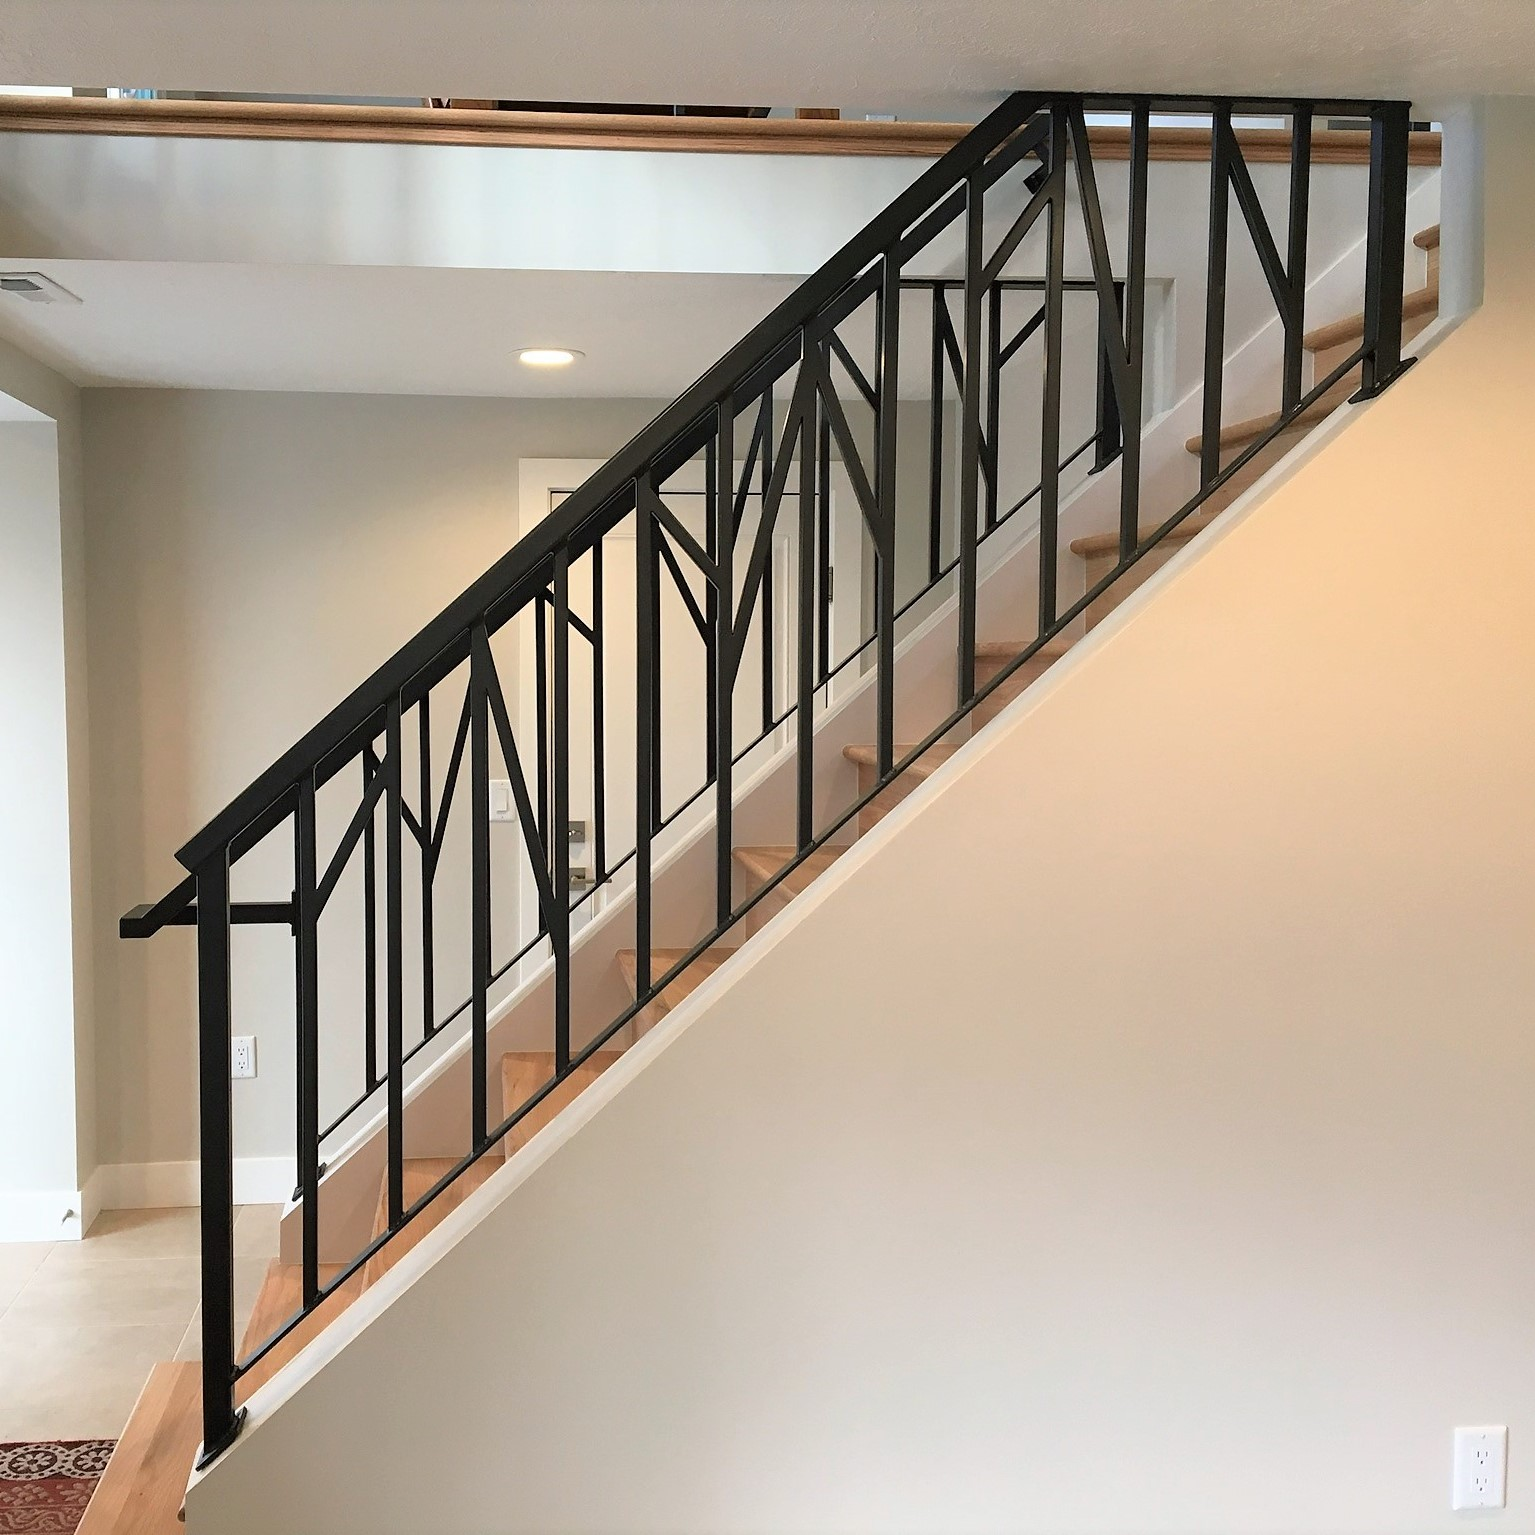 Home » Our Work » Interior Metal Railing